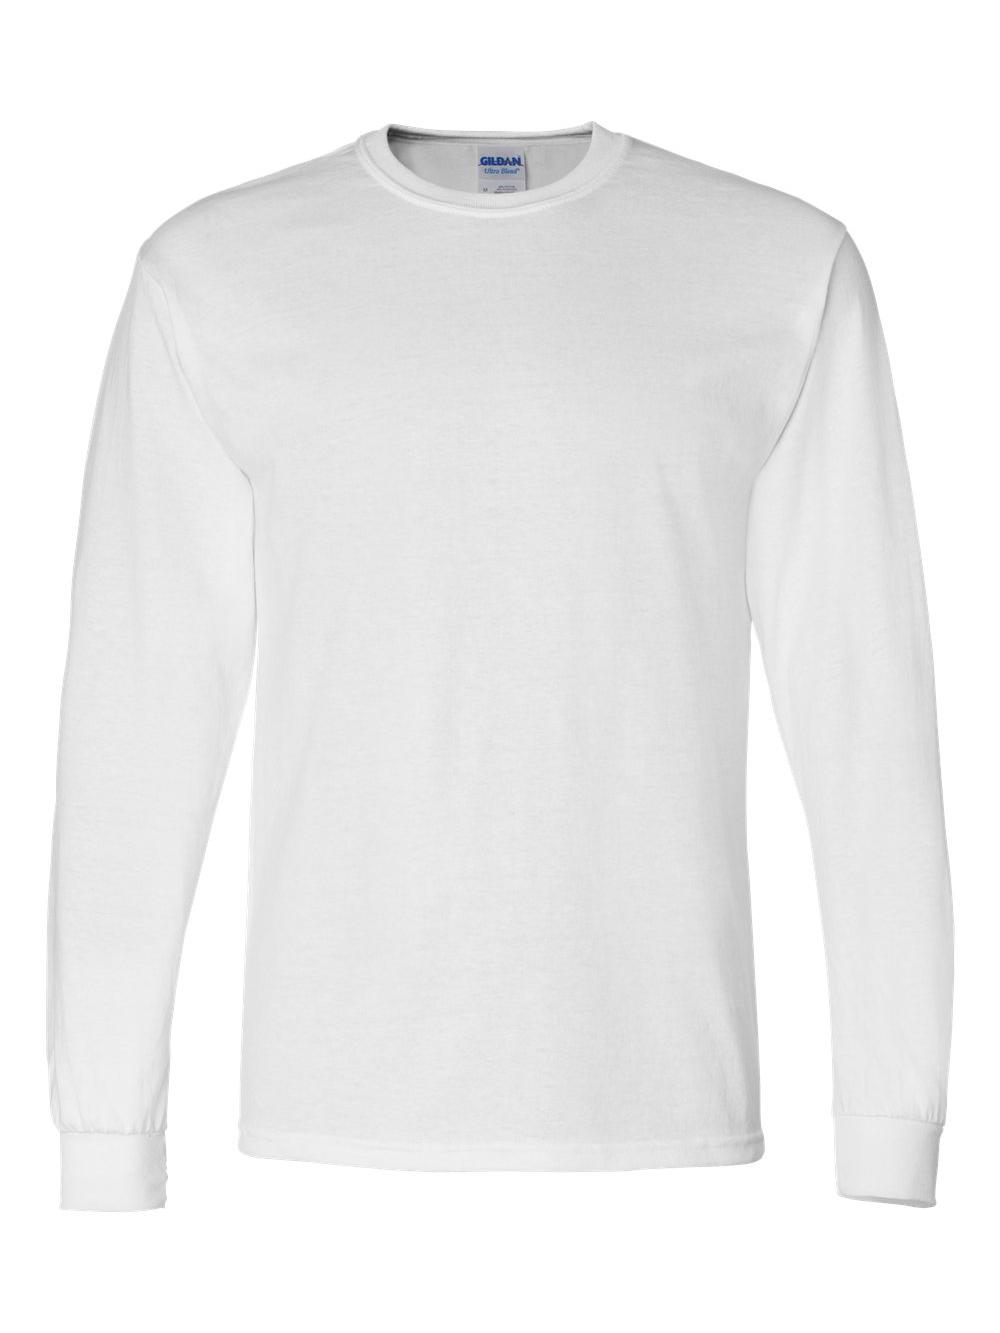 Gildan-DryBlend-50-50-Long-Sleeve-T-Shirt-8400 thumbnail 46